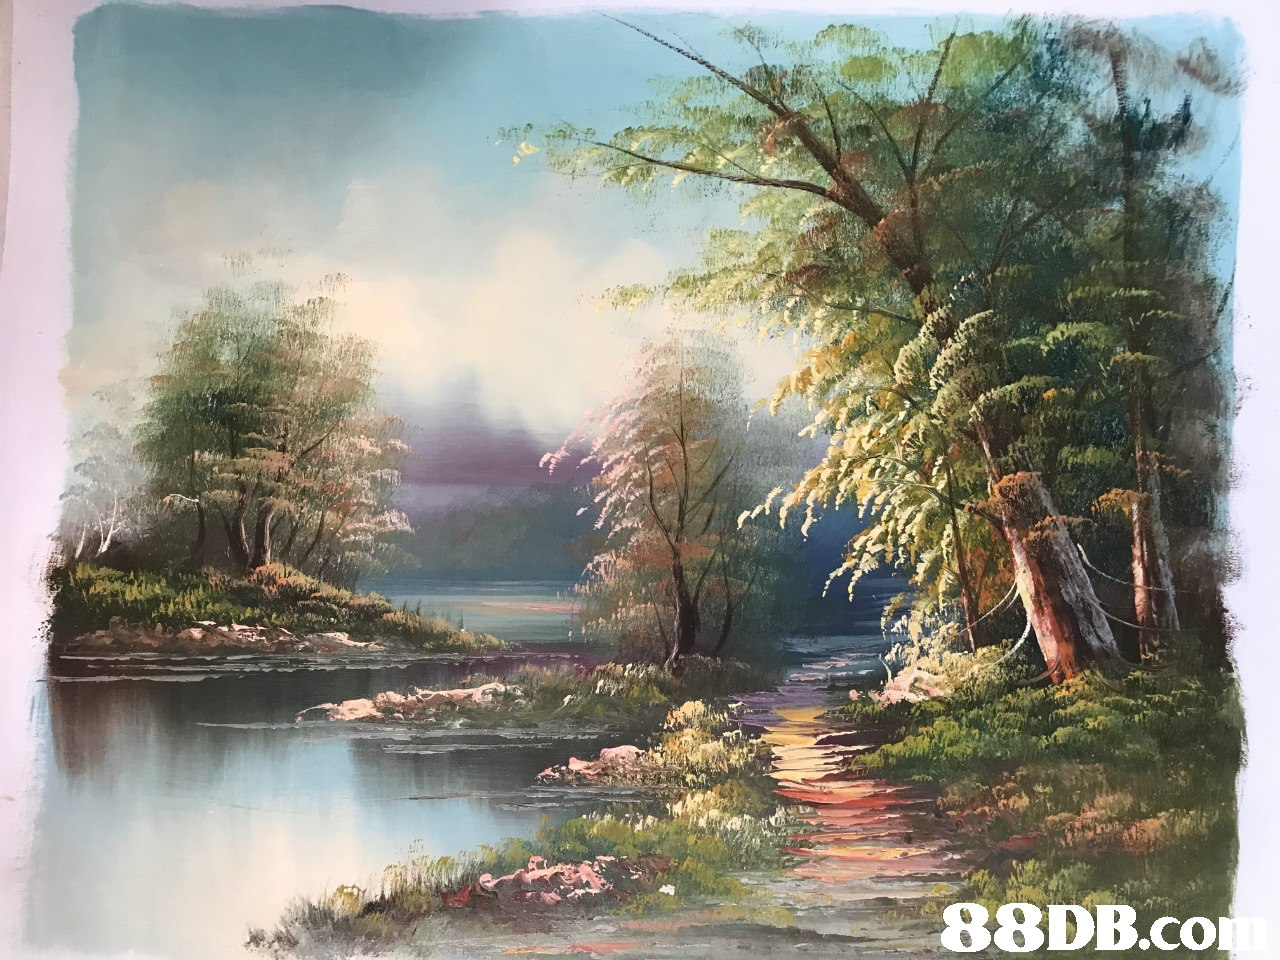 34 88DB.co  Natural landscape,Nature,Painting,Tree,Atmospheric phenomenon